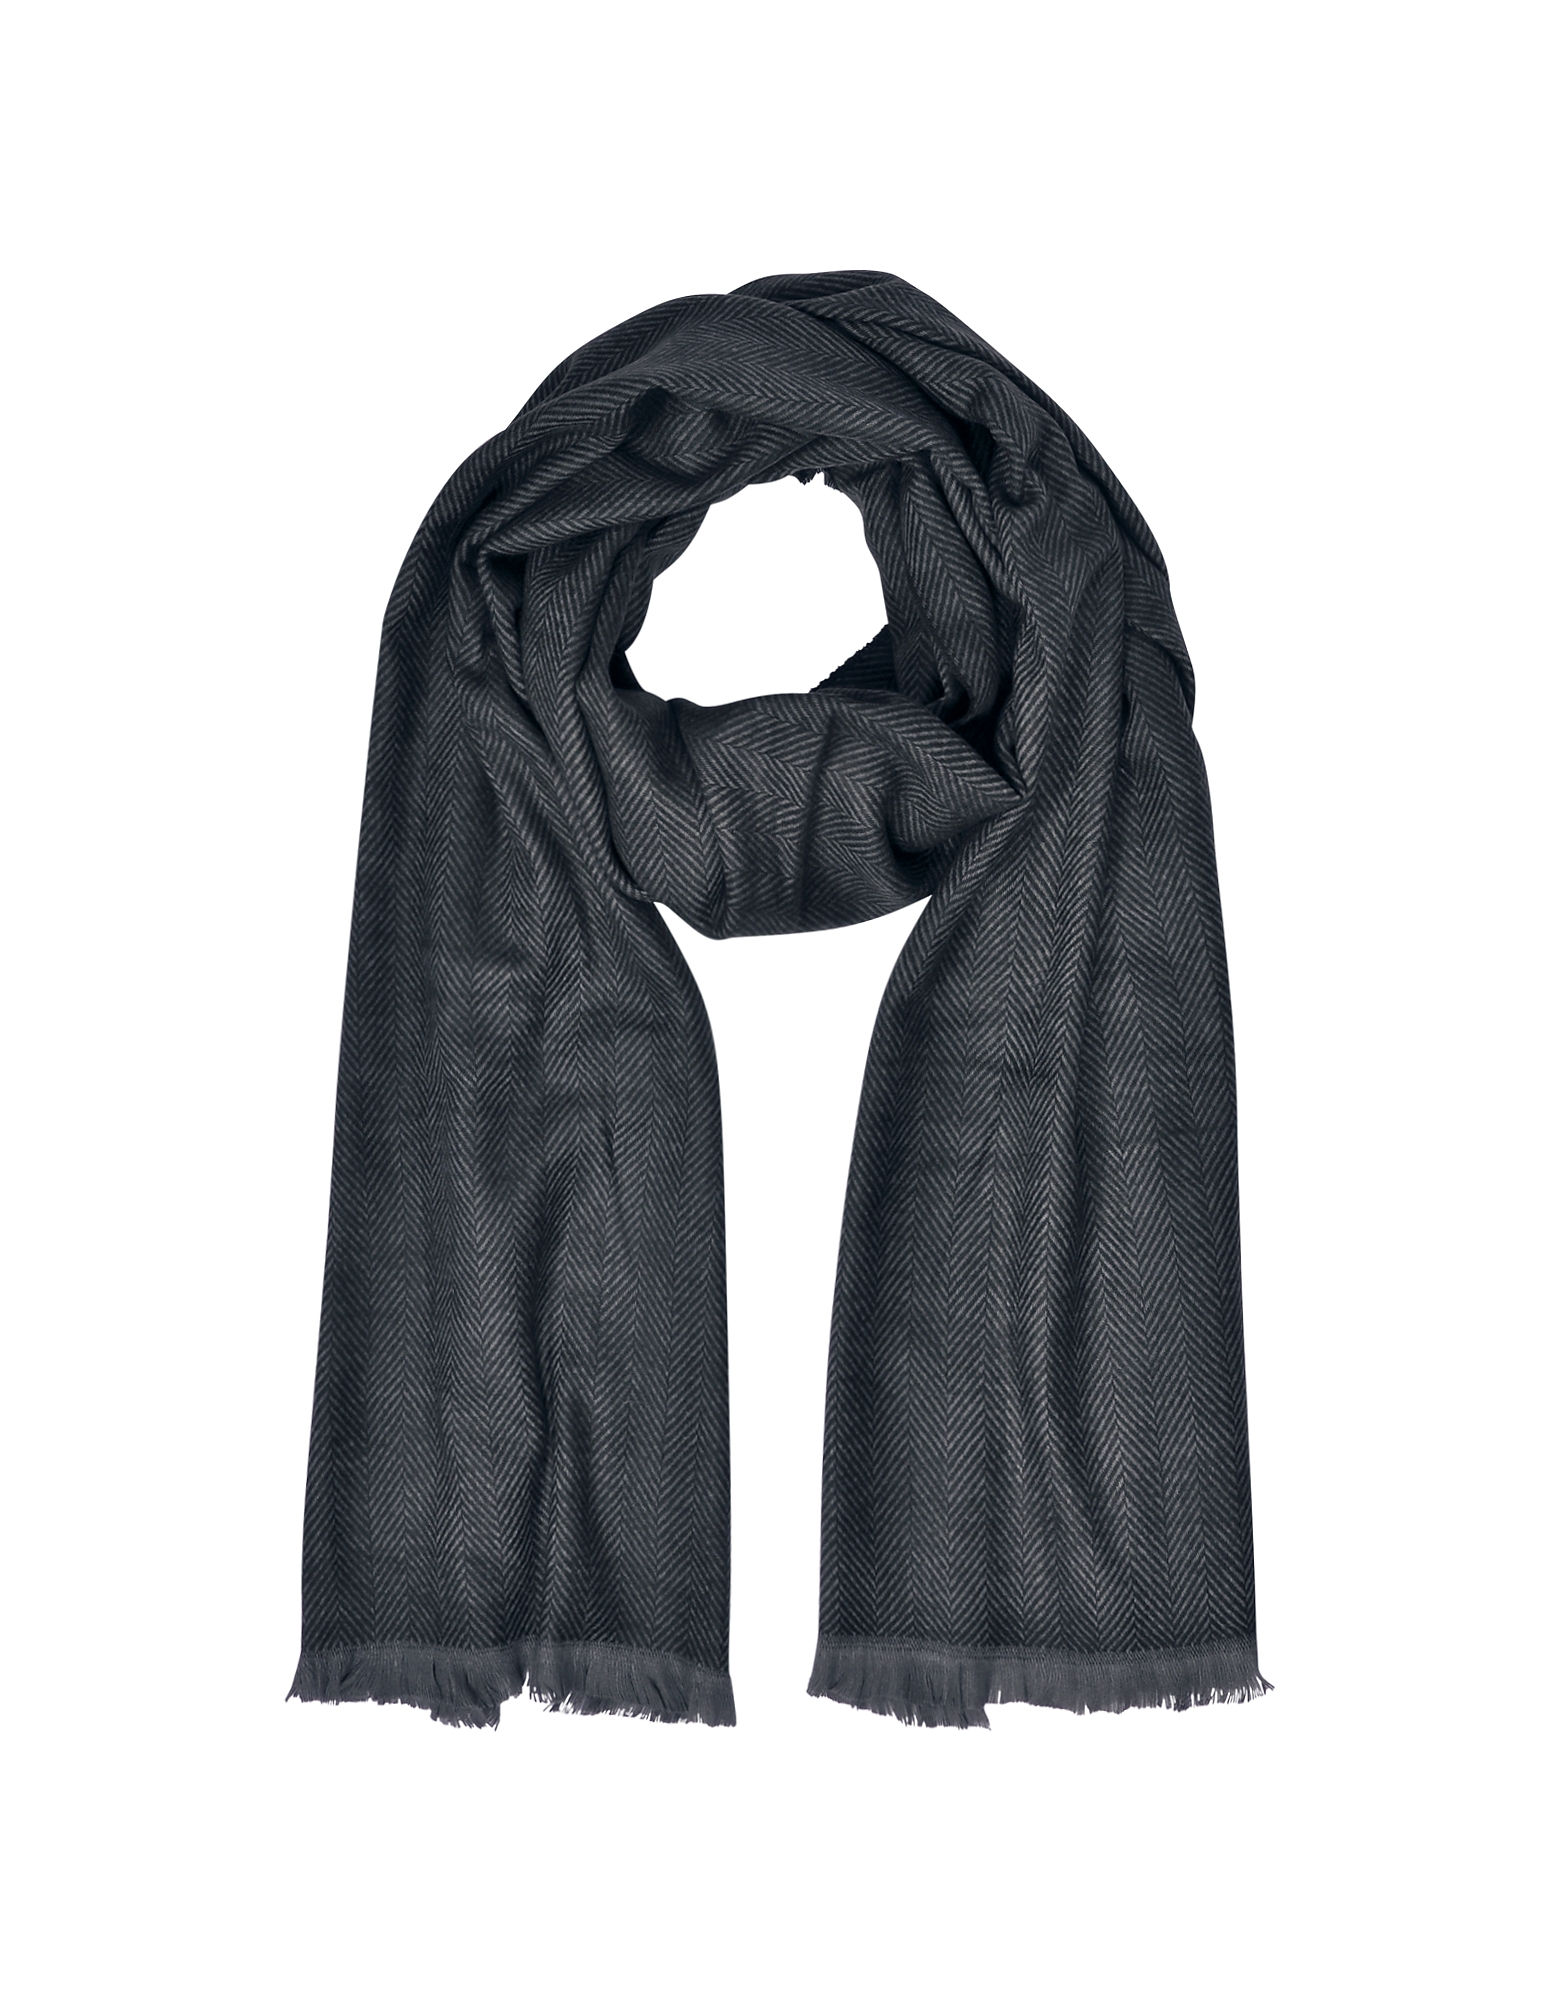 Marina D'Este Long Scarves, Zigzag Stripe Cashmere, Silk and Wool Long Scarf w/Fringes